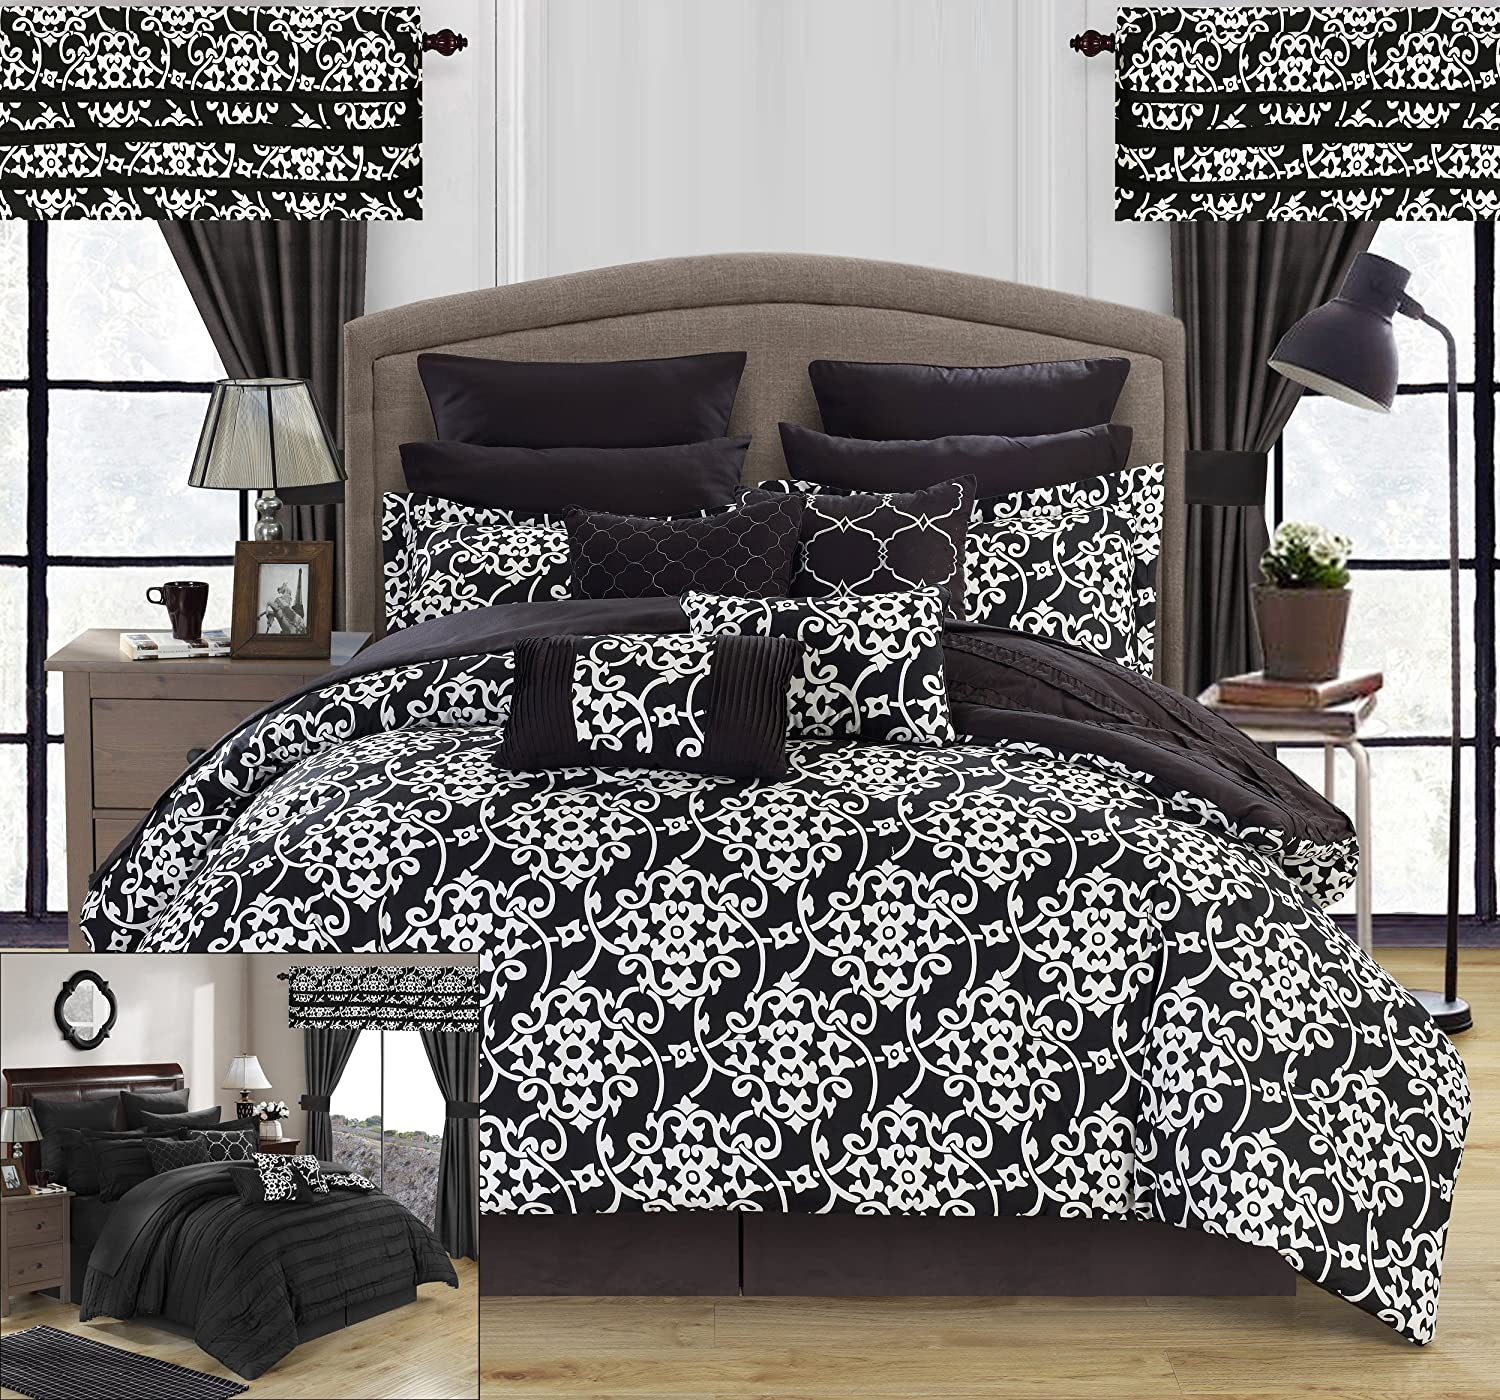 Chic Home Hailee 24 Piece Comforter Set Complete Bed in a Bag Pleated Ruffles Black